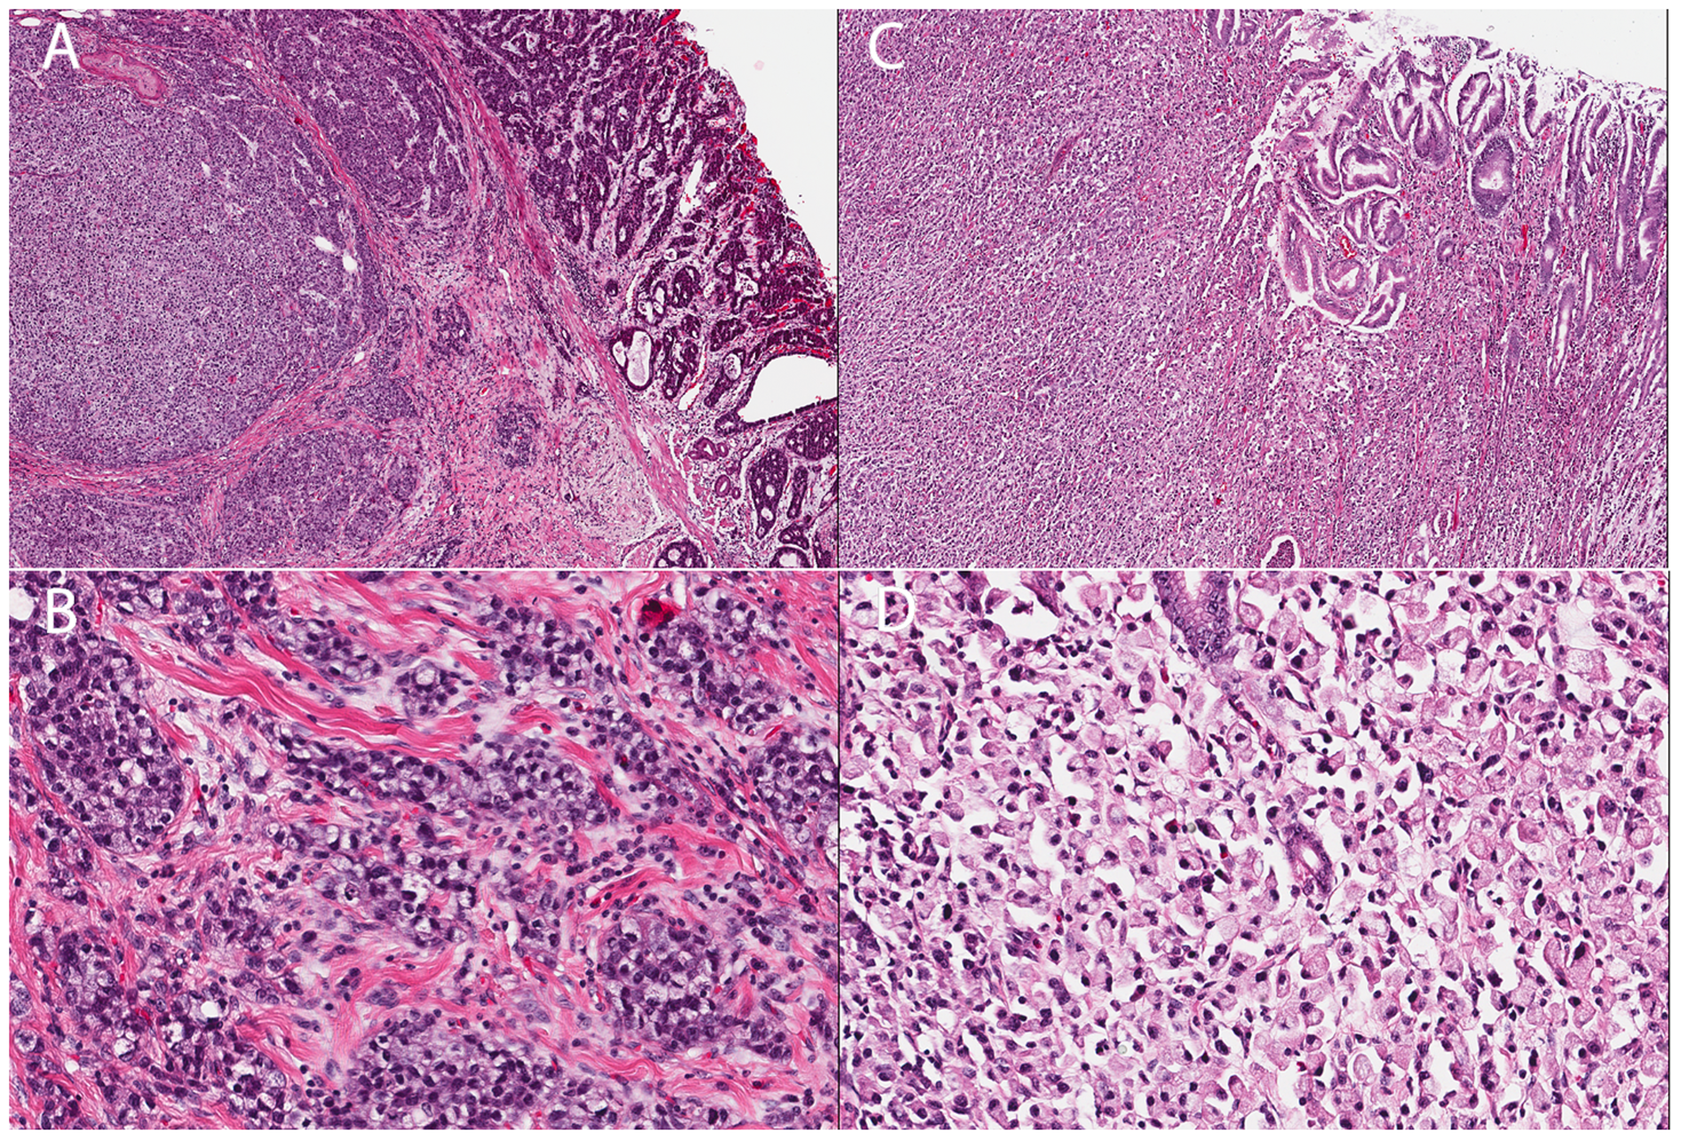 Histology of two gastric cancer patients from the Maritime Canadian family.